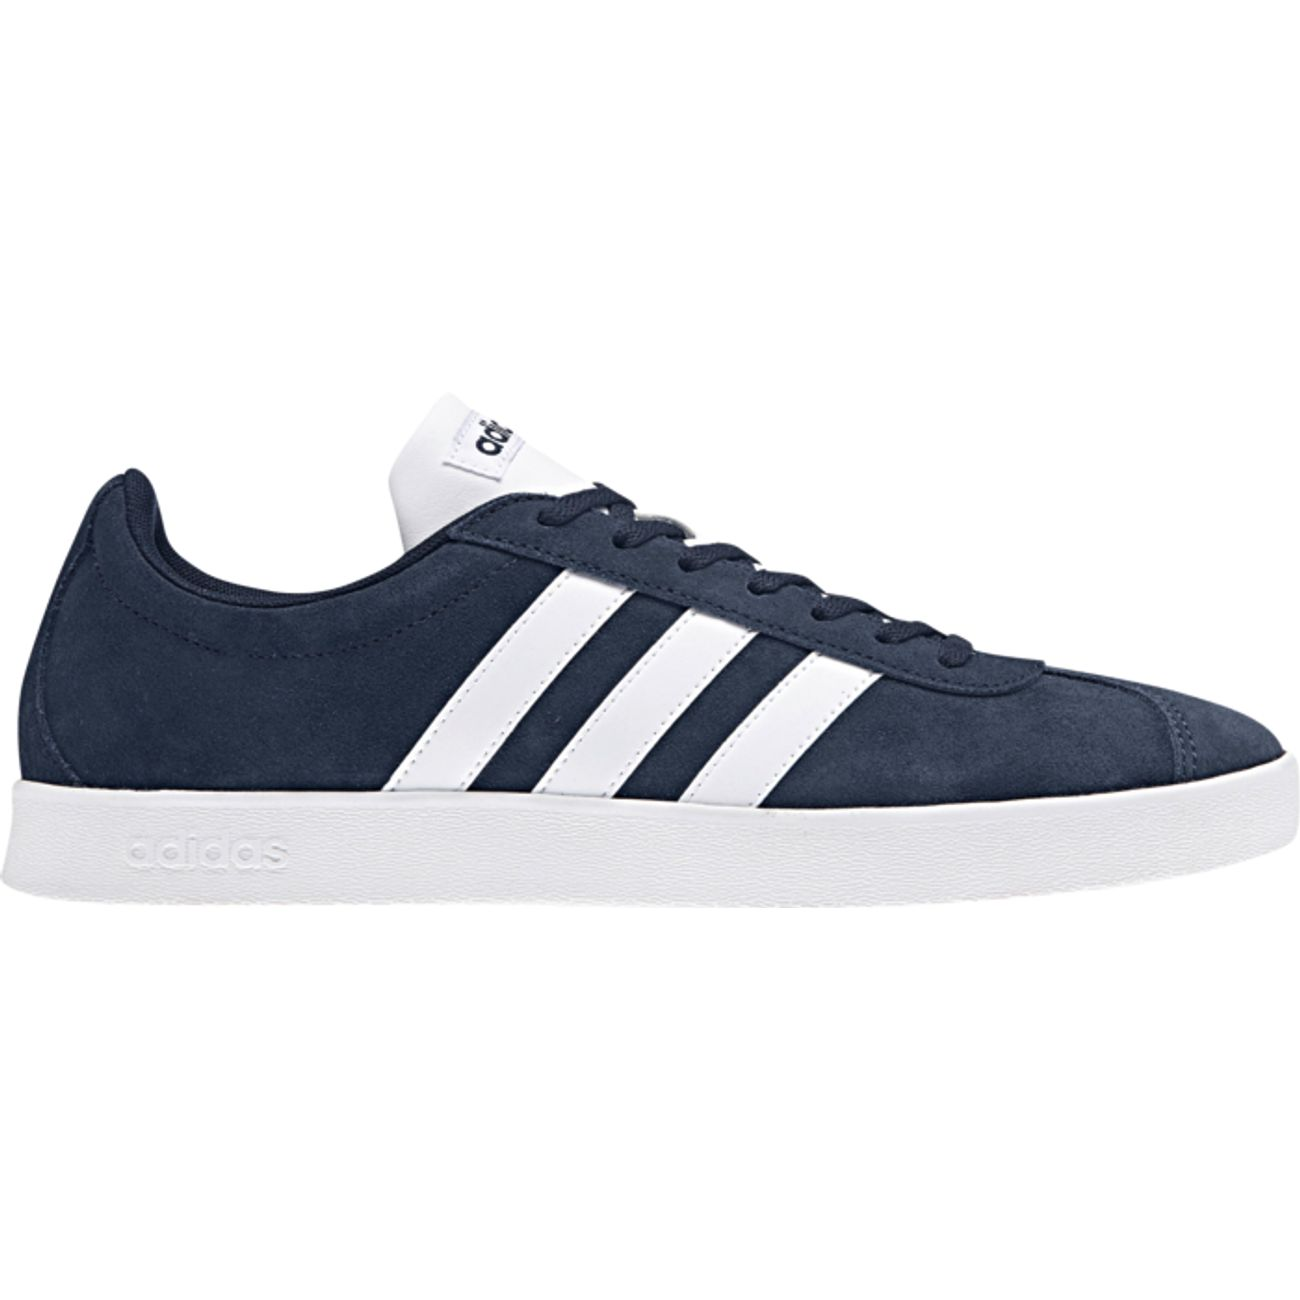 CHAUSSURES BASSES   ADIDAS BTE VL COURT 2.0